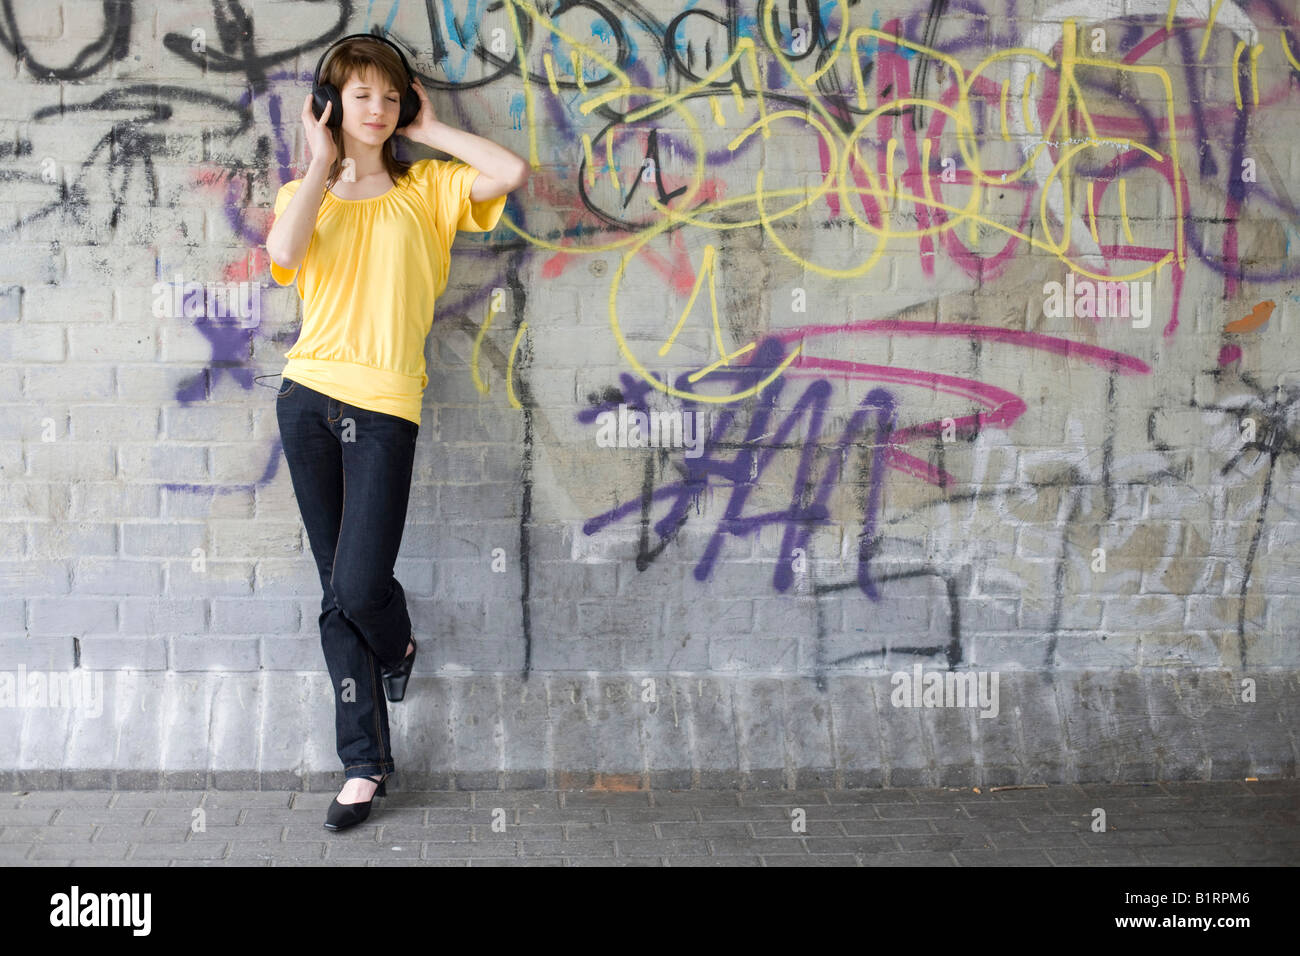 Young woman listening to music with big headphones, standing in front a graffiti sprayed wall - Stock Image